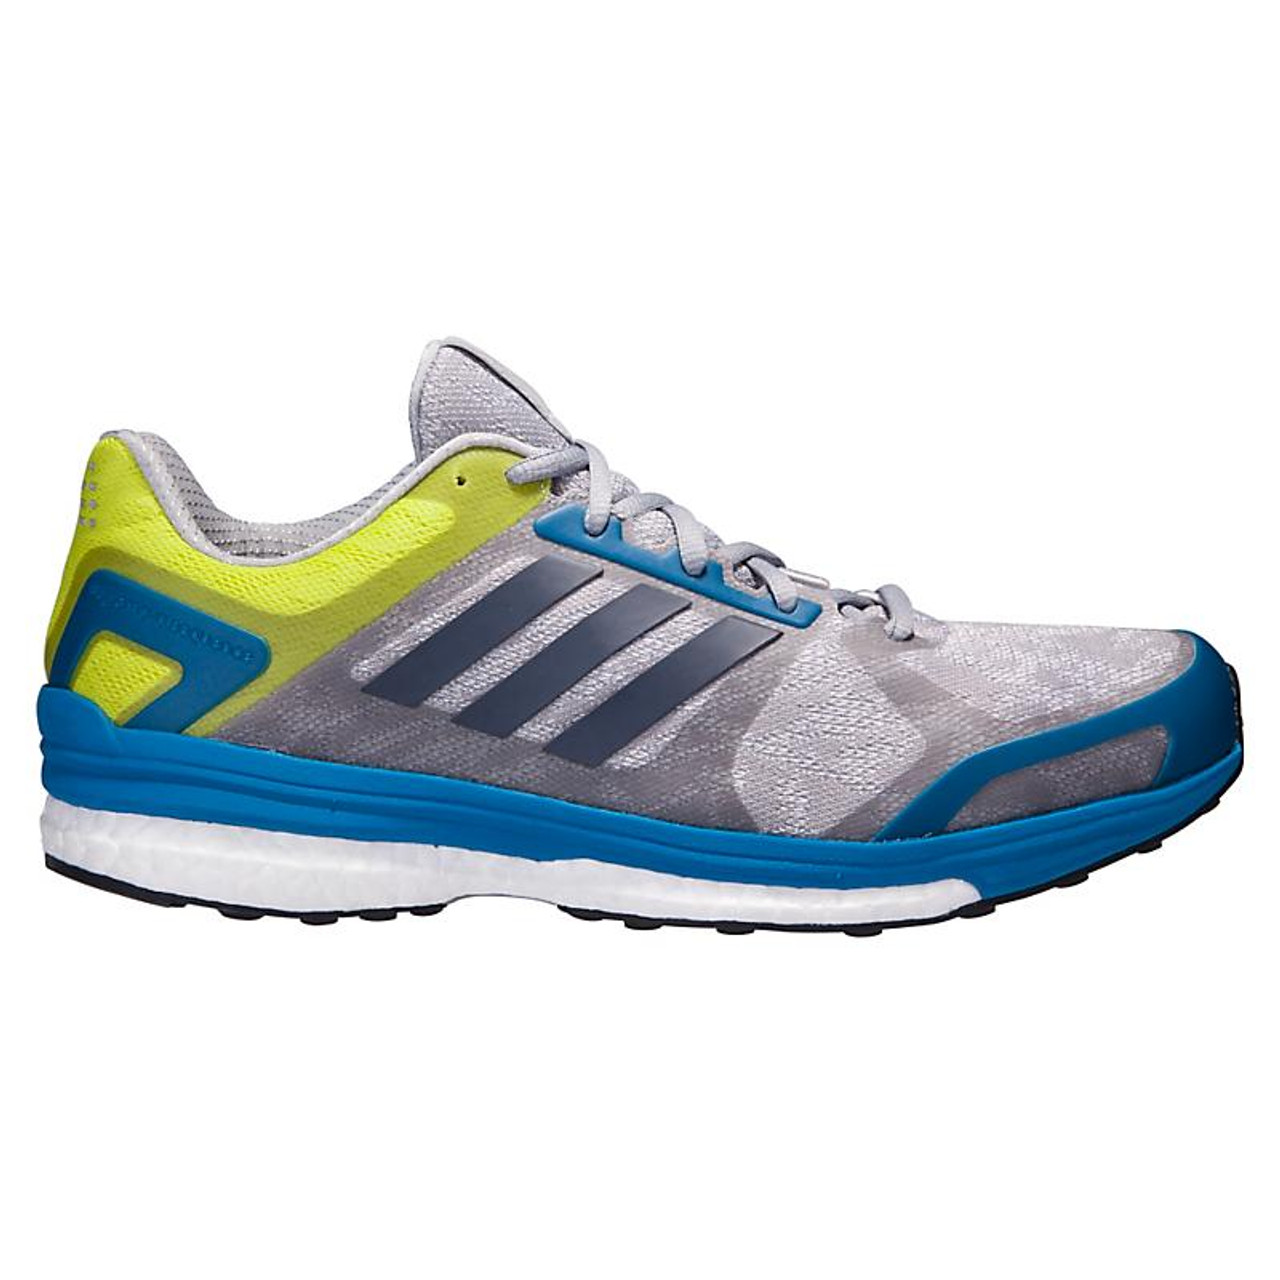 superior quality 50672 a8f1f Men s adidas Supernova Sequence 9 Running Shoe   Free Shipping